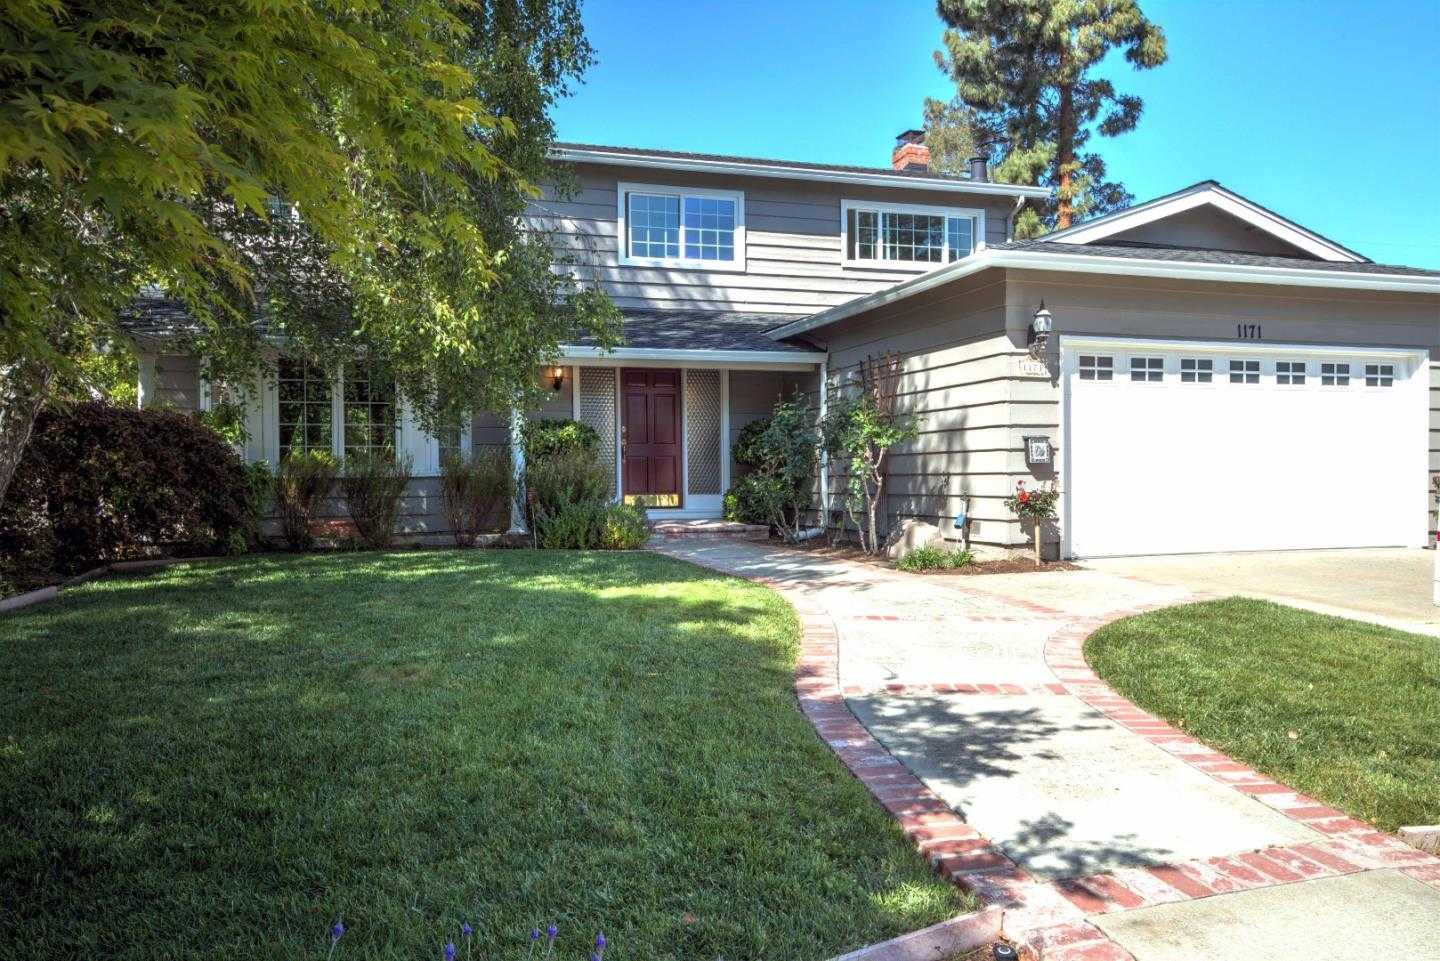 $1,495,000 - 4Br/3Ba -  for Sale in Sunnyvale